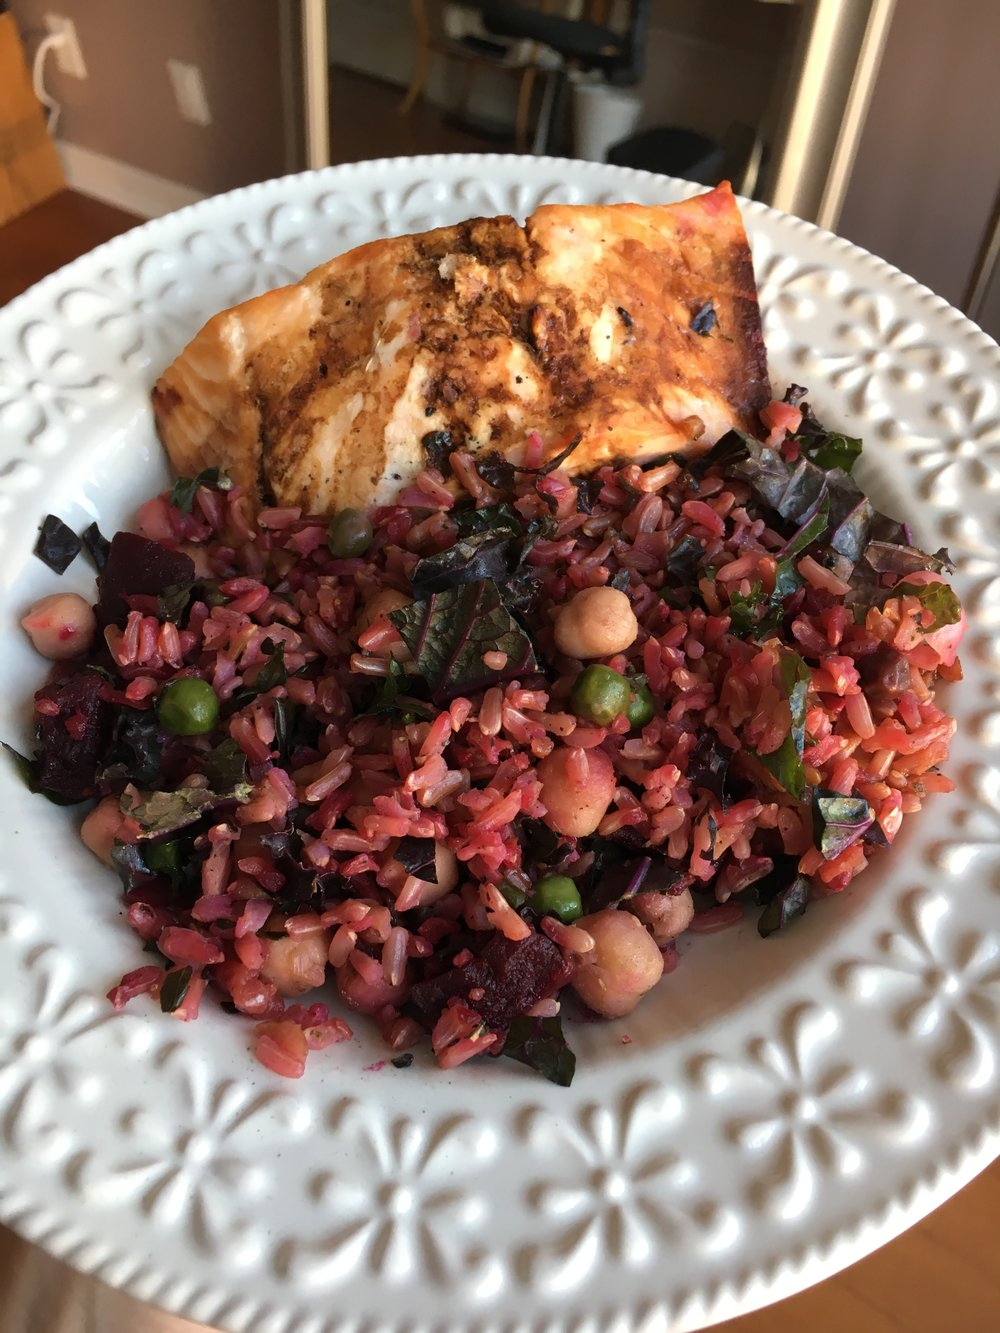 Rice with kale, chickpeas, beets and salmon